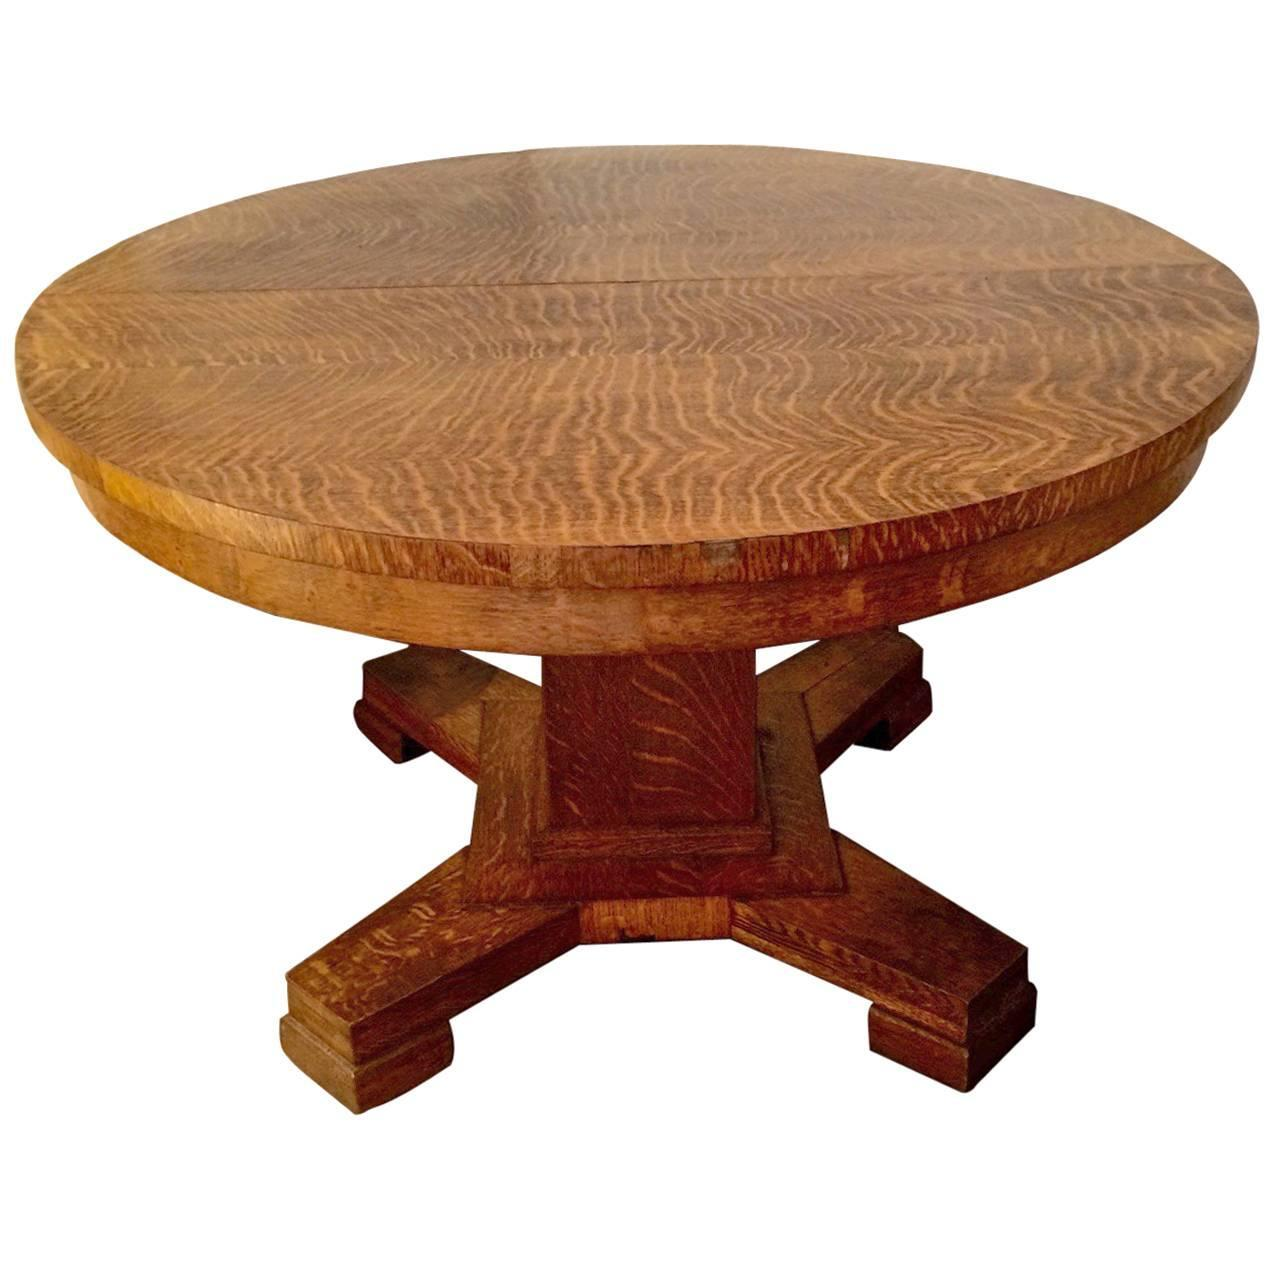 Arts and crafts style round zebra grain dining table at 1stdibs